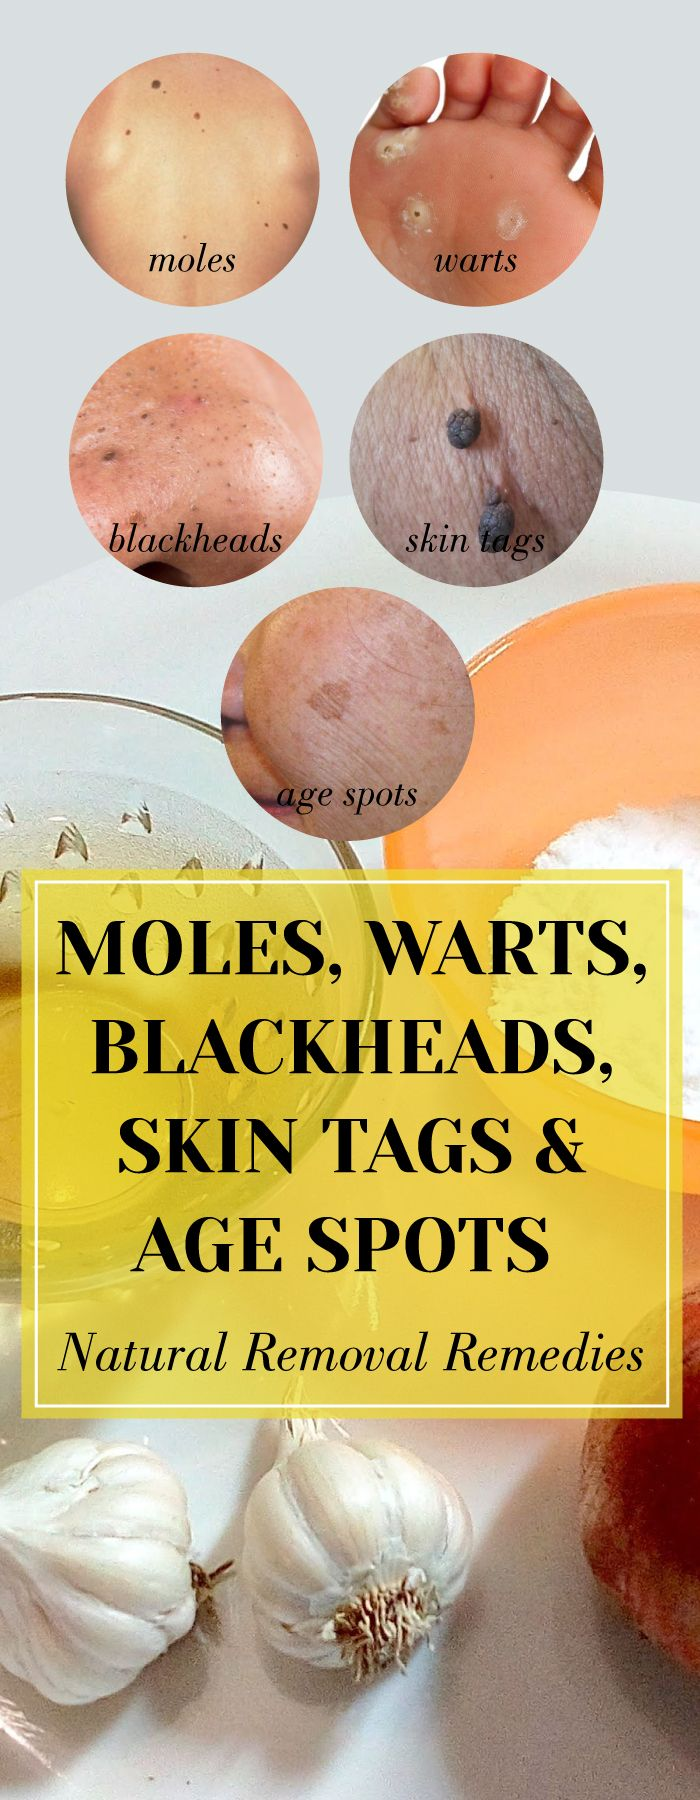 Moles, Warts, Blackheads, Skin Tags And Age Spots – Natural Removal Remedies